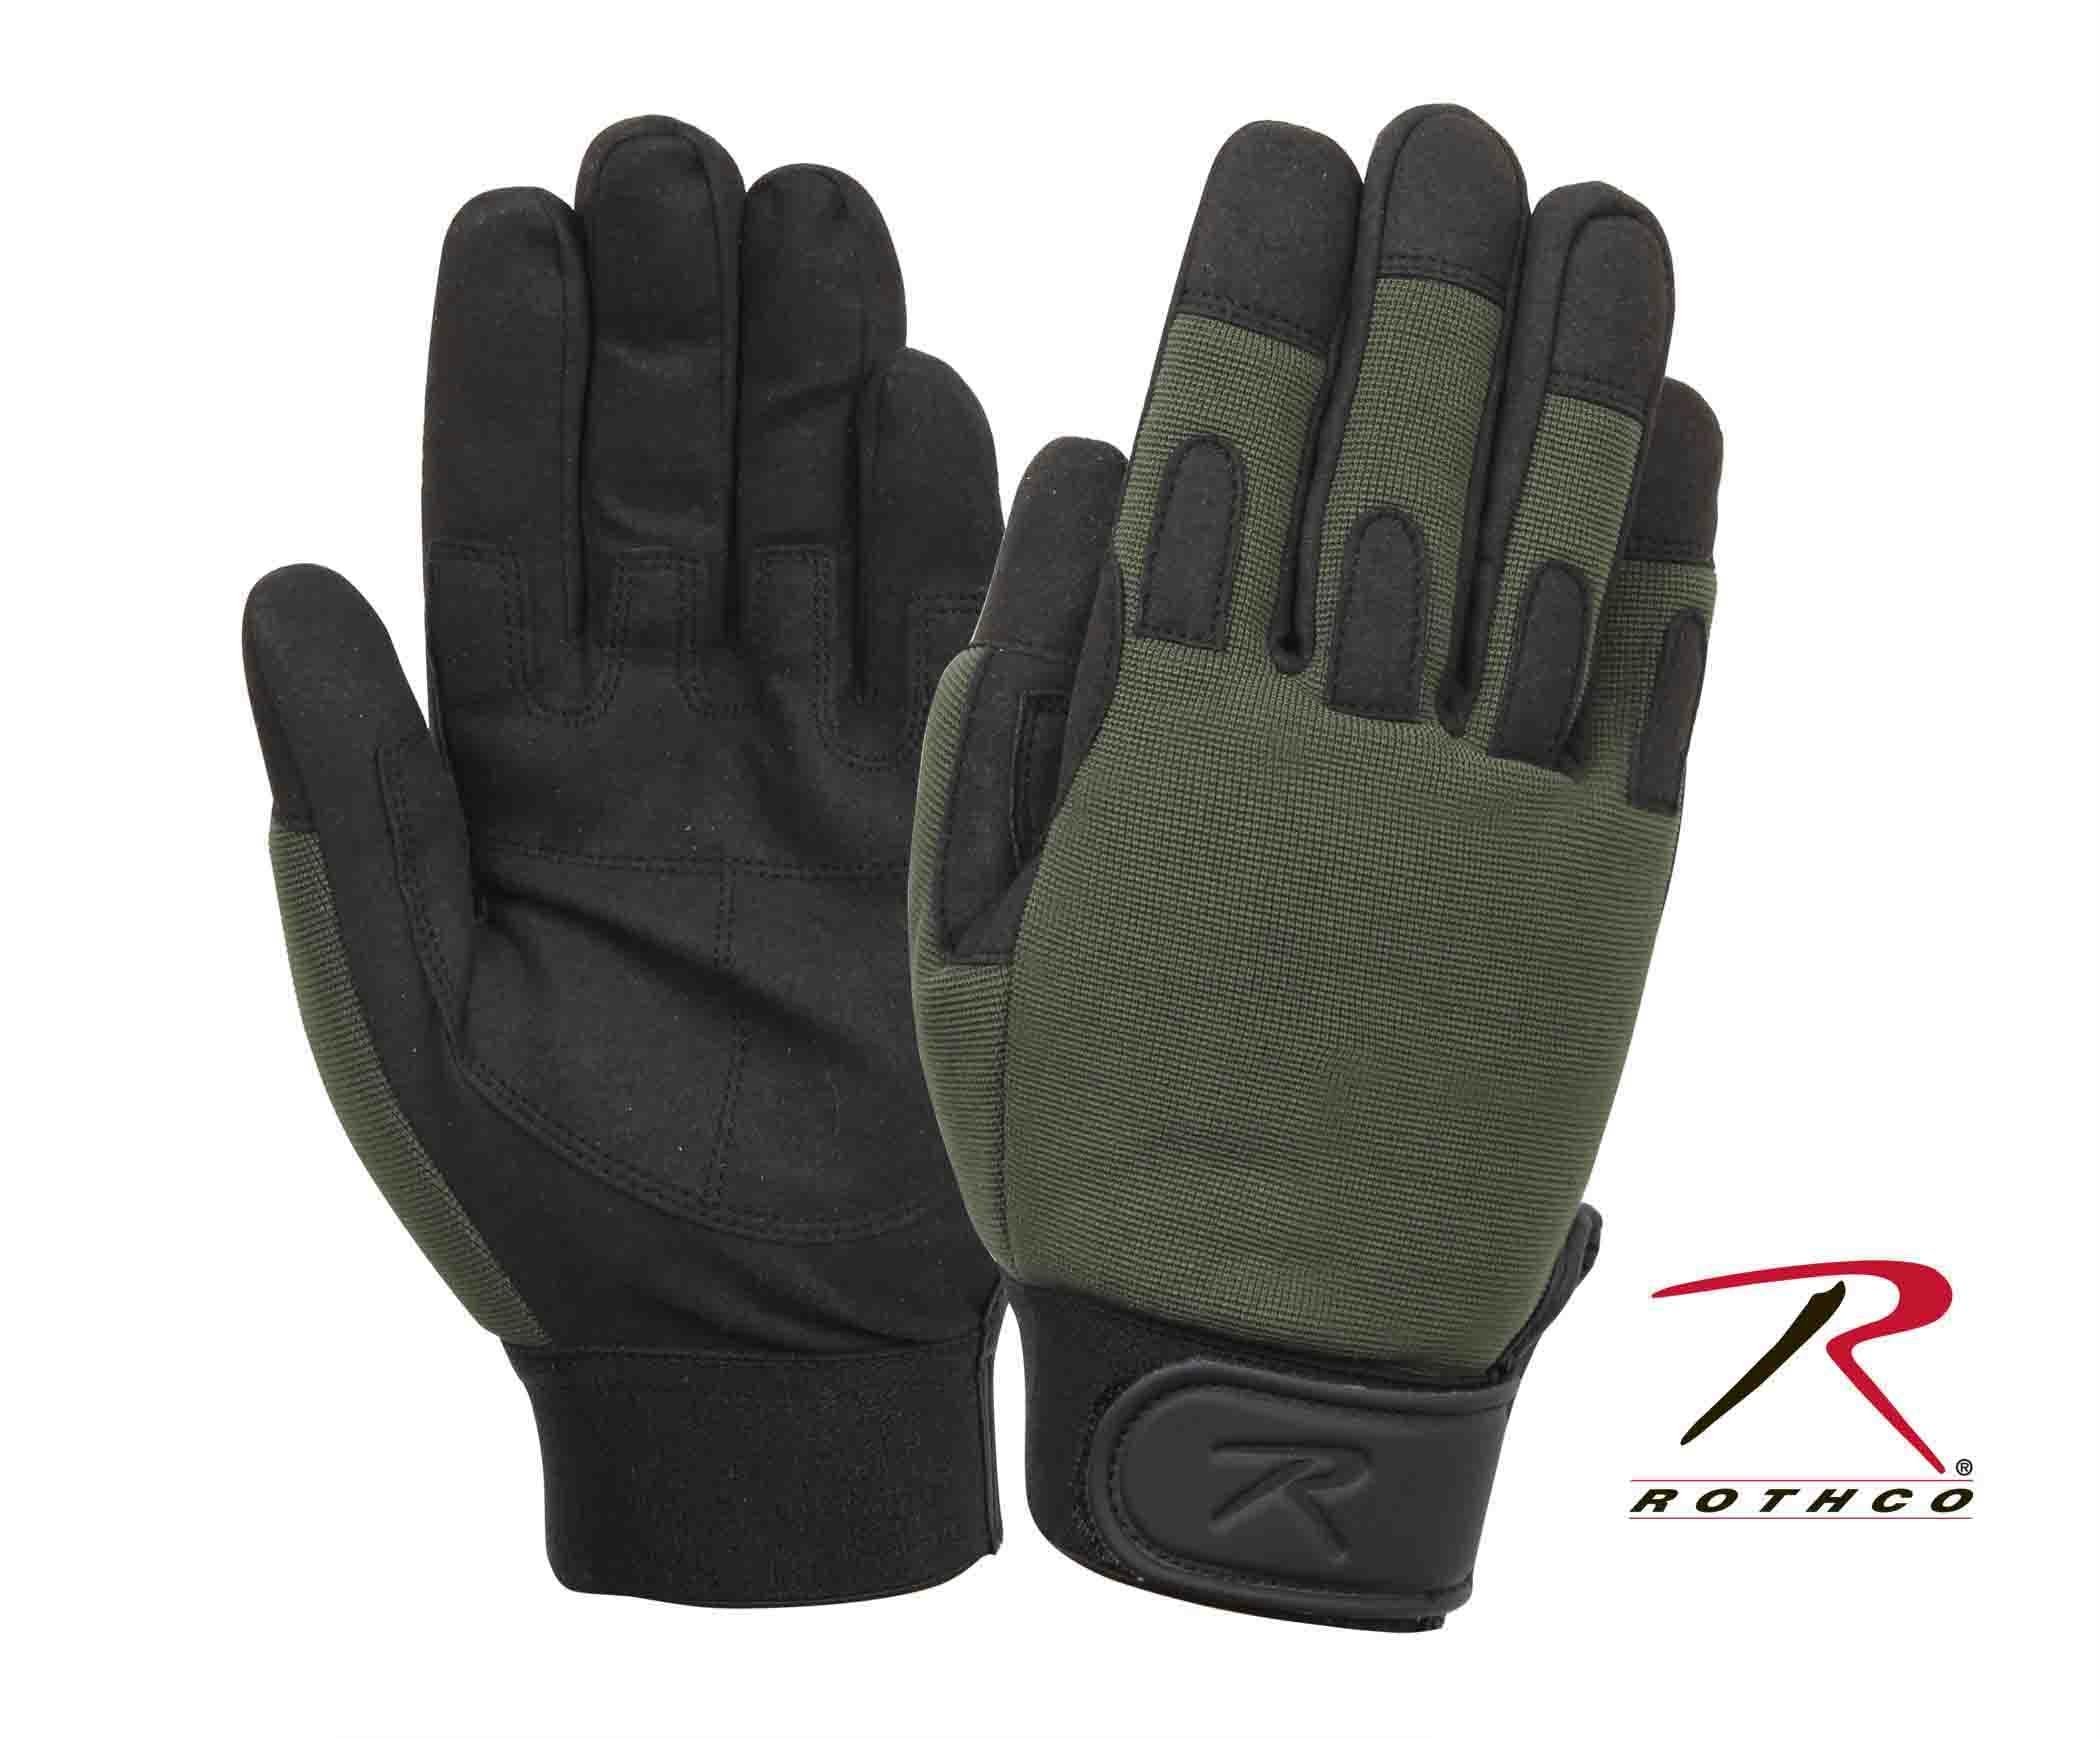 Rothco Lightweight All Purpose Duty Gloves - Olive Drab / L